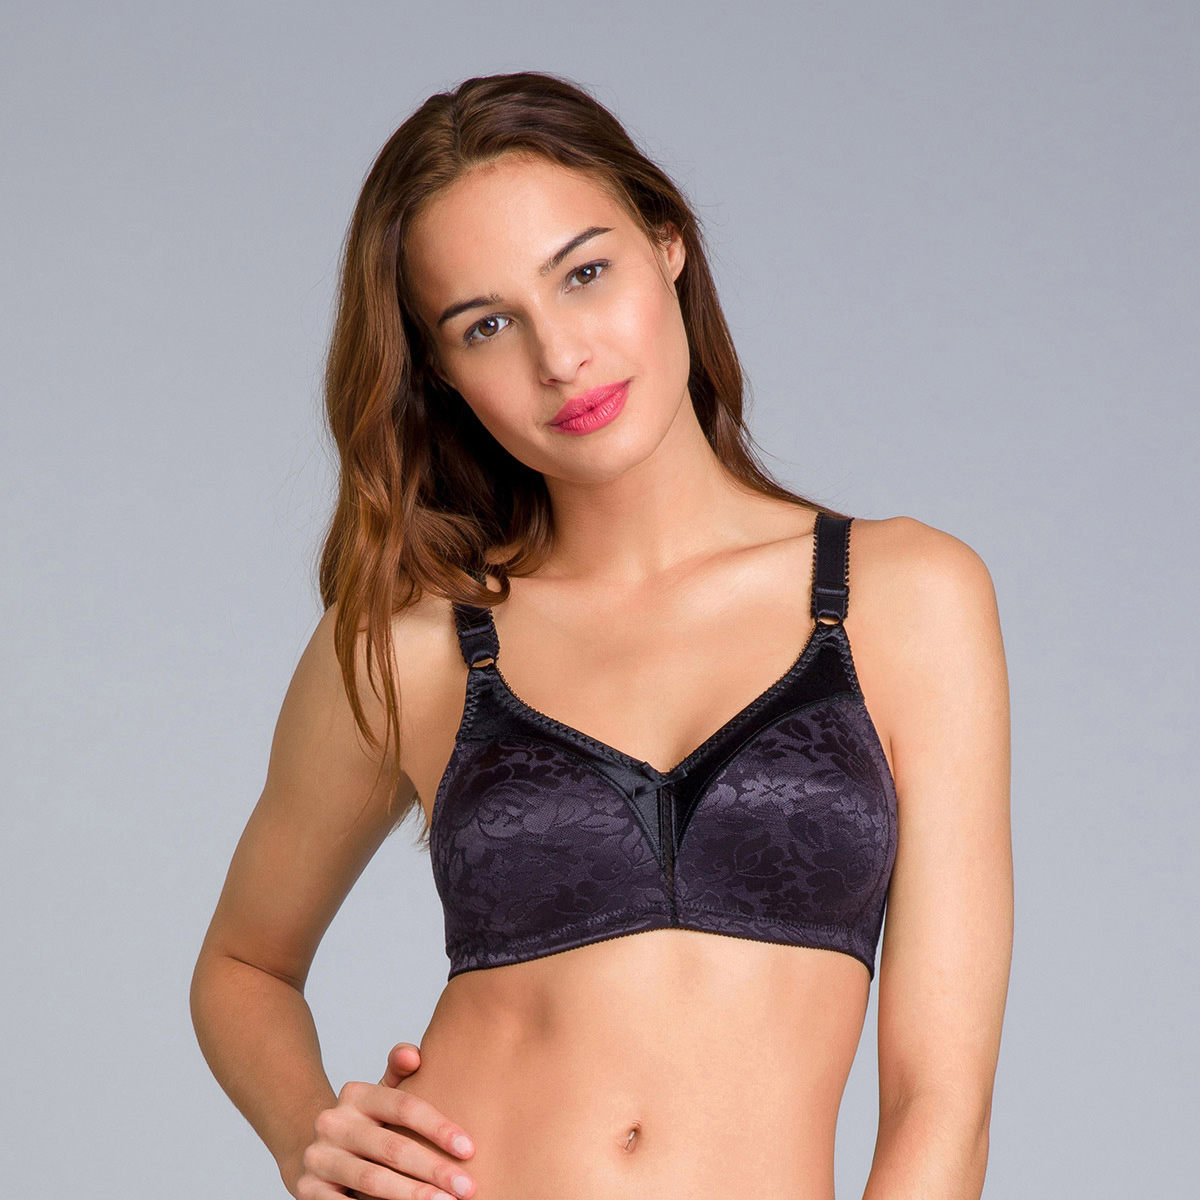 Reggiseno senza ferretto nero - Double Support - PLAYTEX